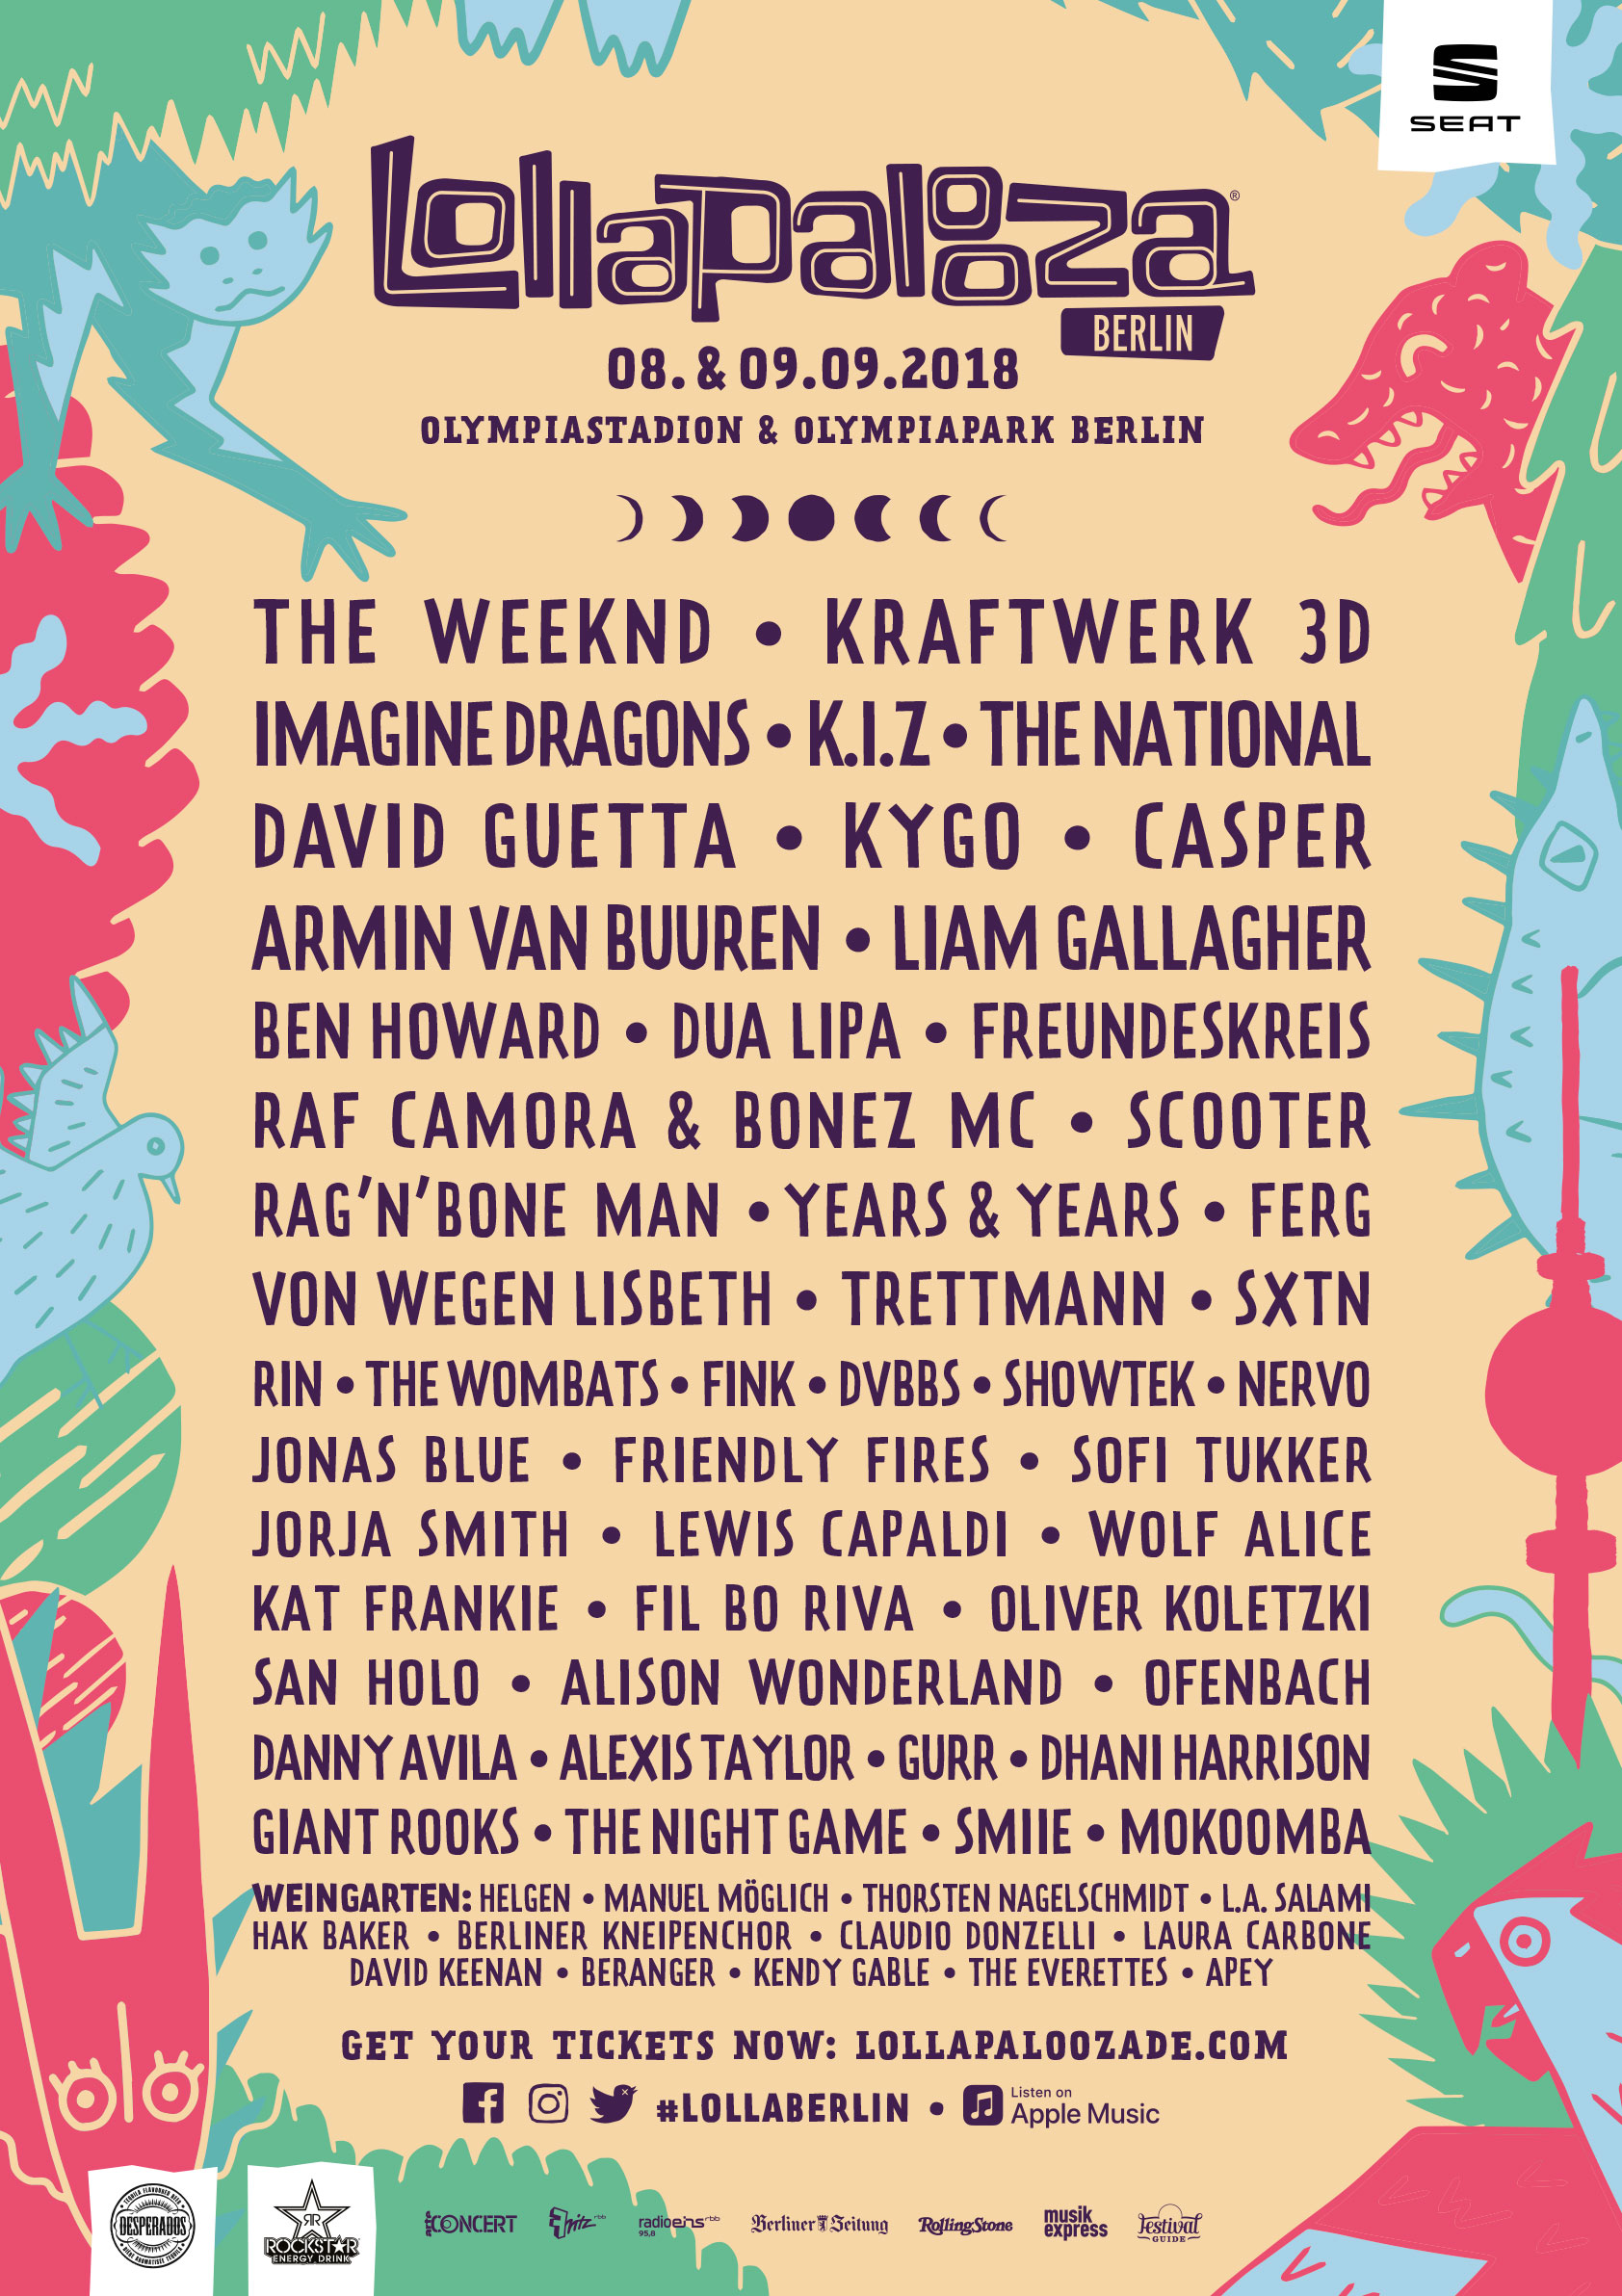 Line-up Lollapalooza Berlin 2018